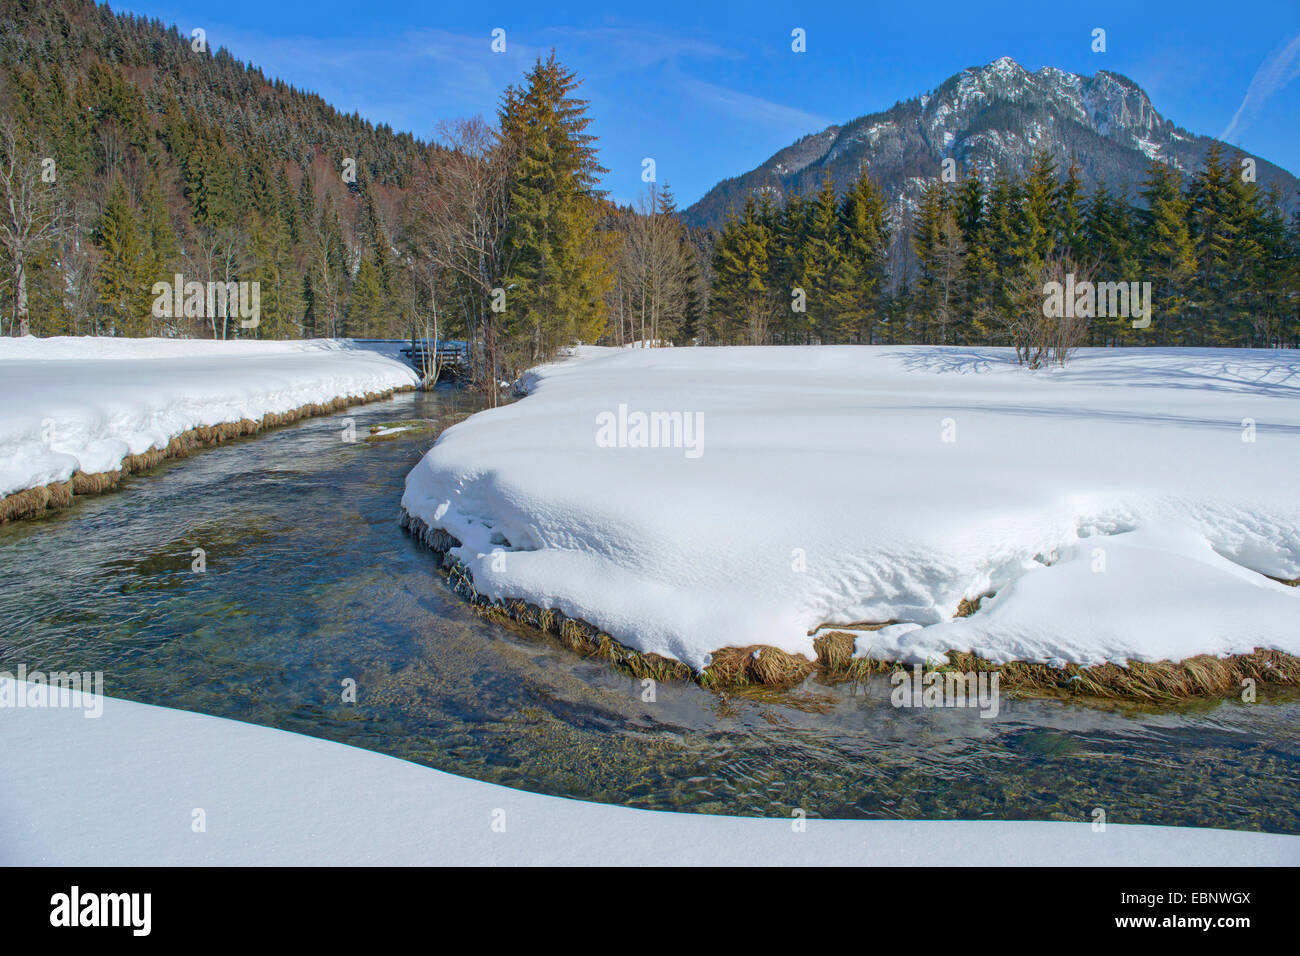 creek in wintry scenery near Ammer sources, with Laber and Ammergauer Alps, Germany, Bavaria, Oberbayern, Upper - Stock Image